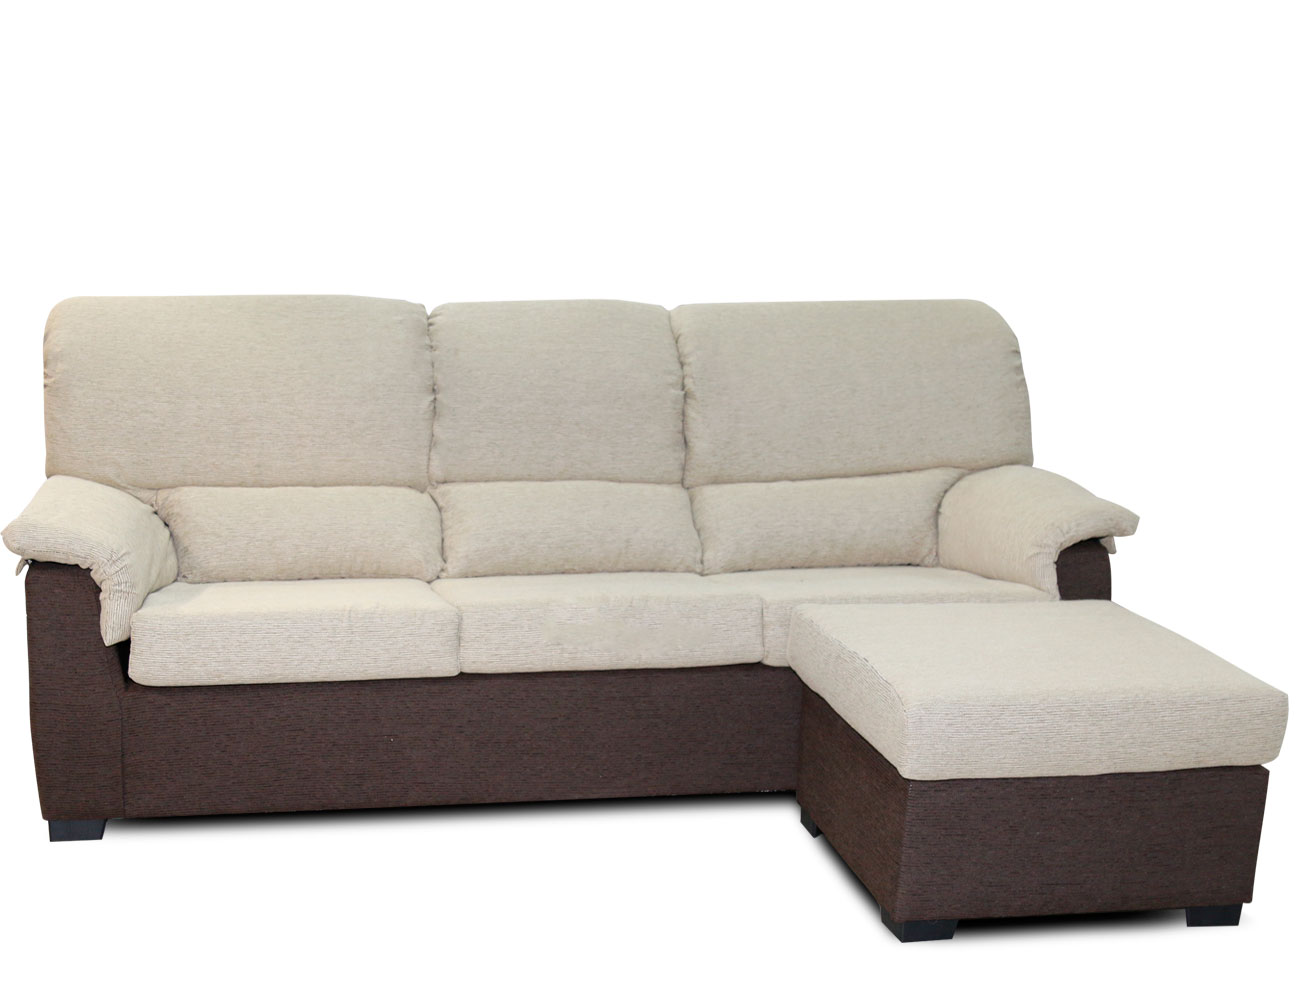 Sof chaiselongue barato con puf reversible 15285 for El factory del mueble